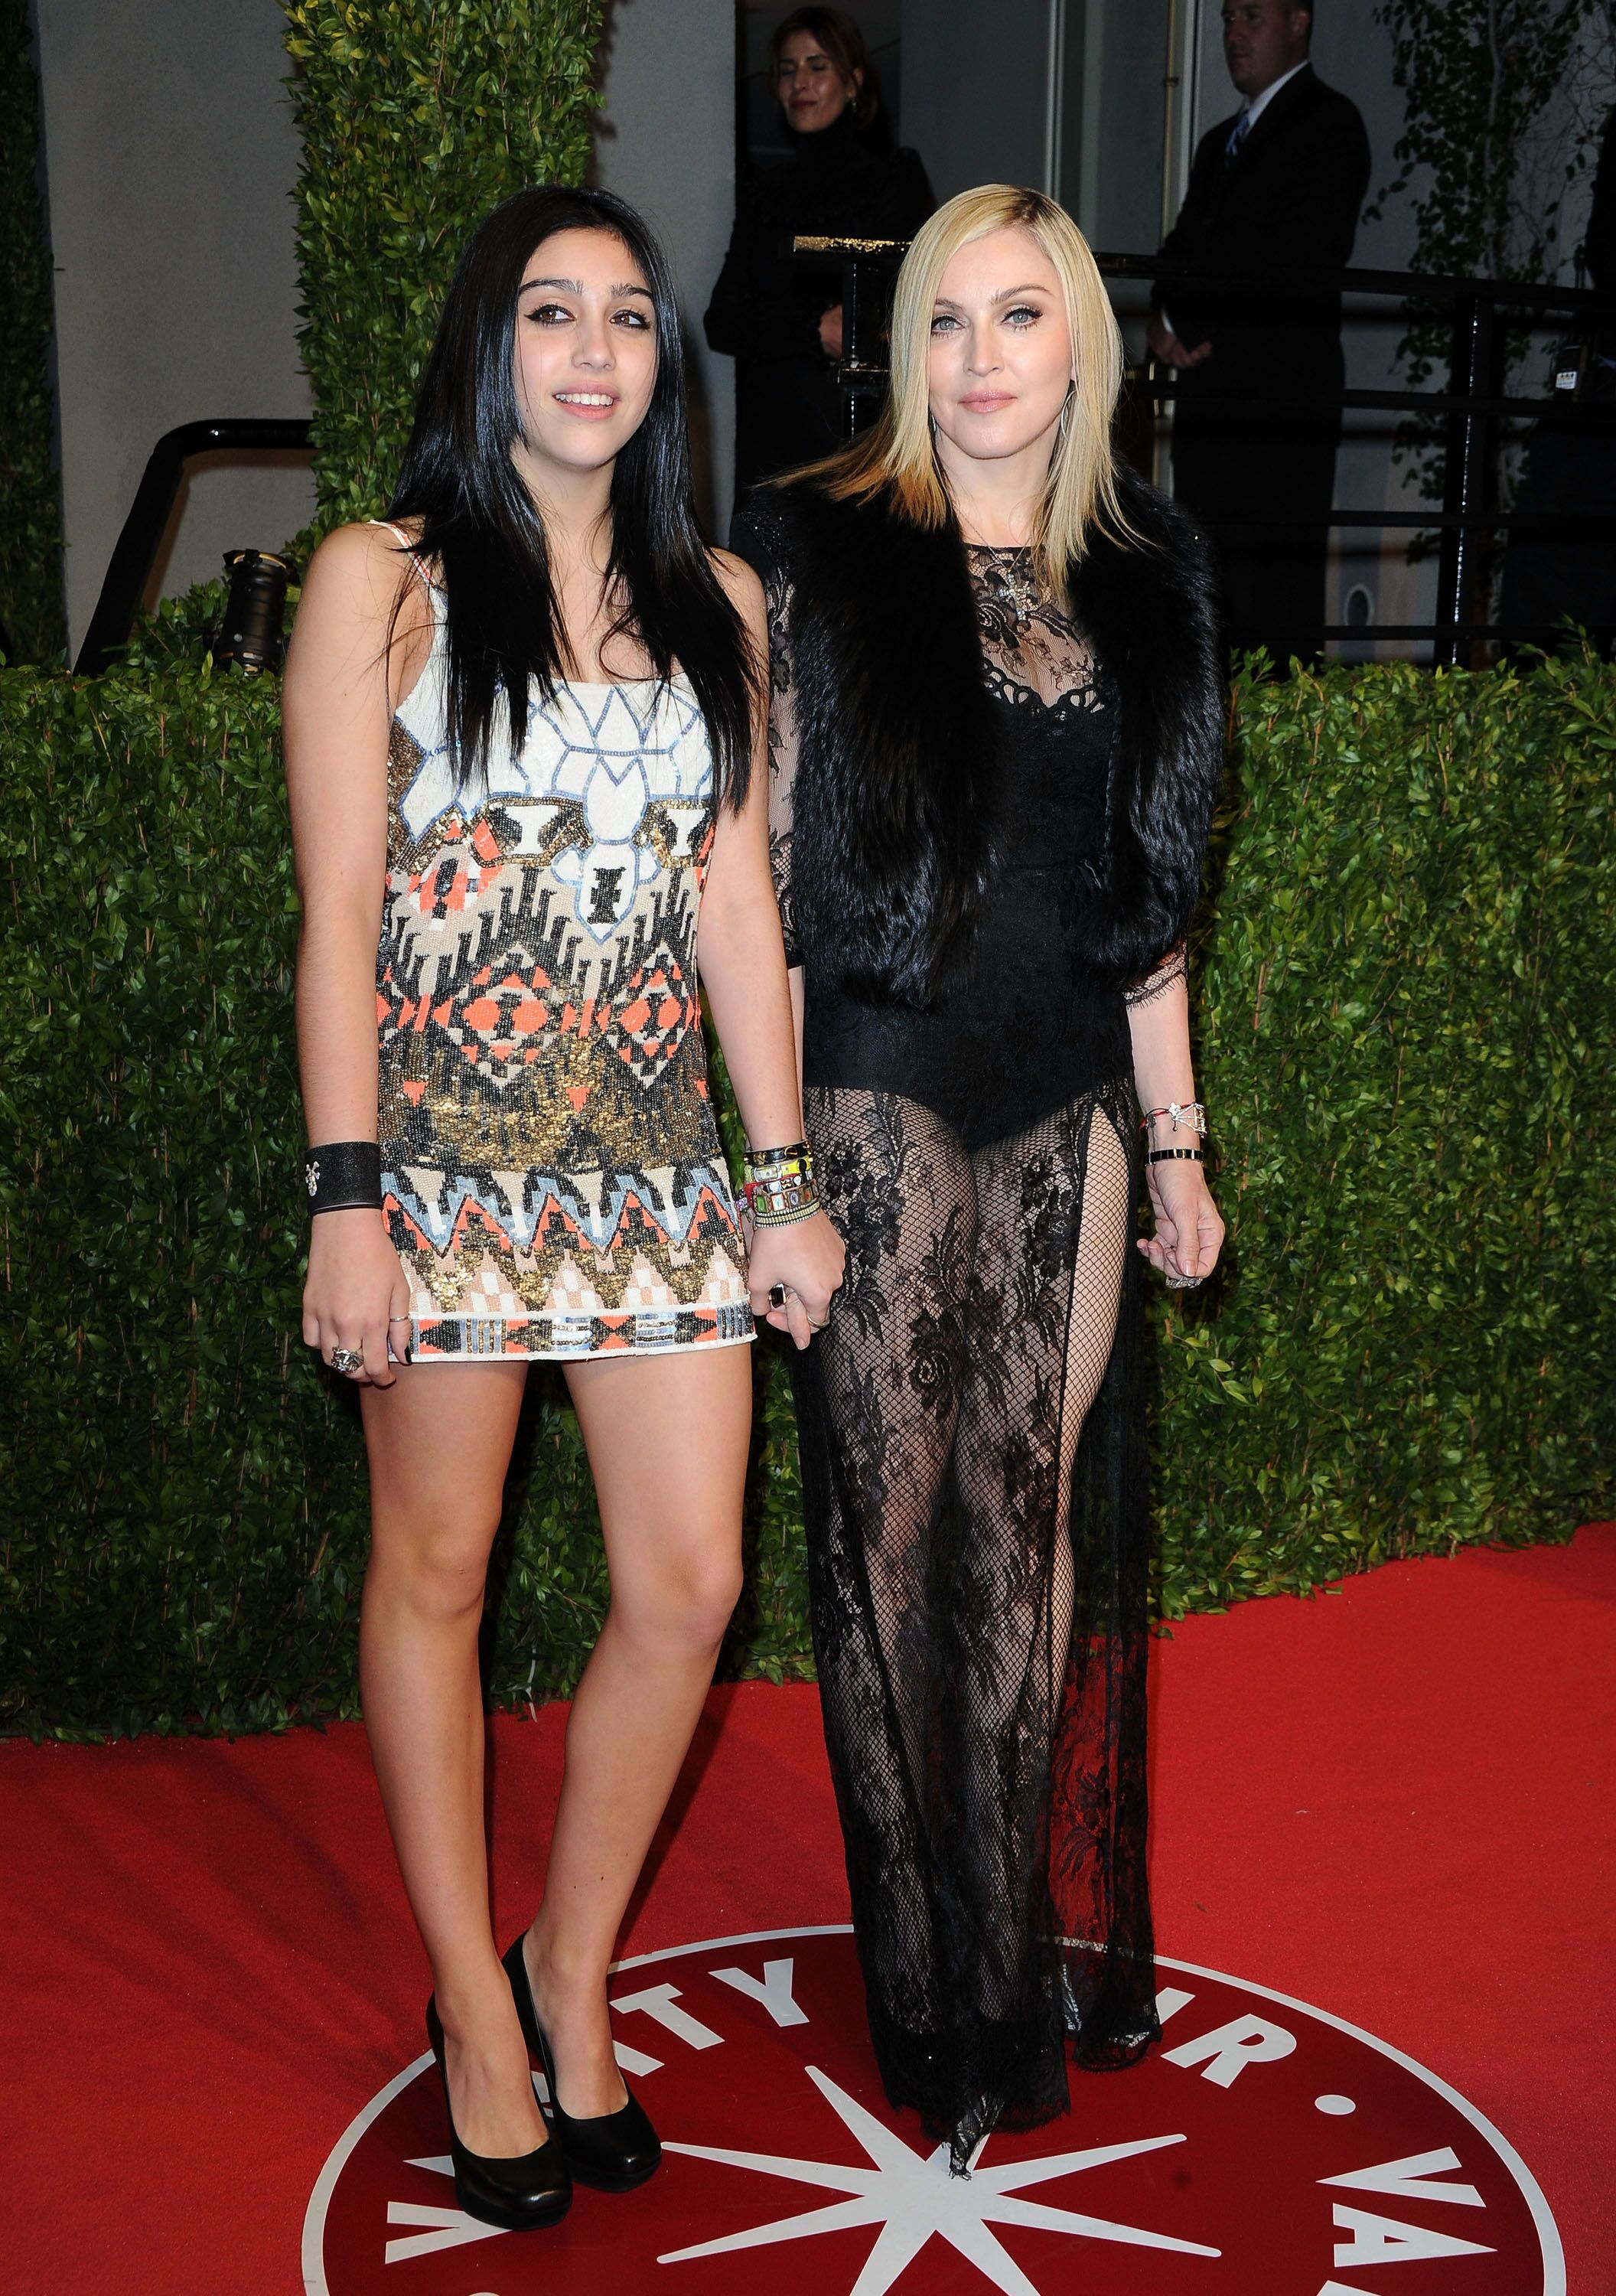 Lourdes Leon and Madonna arrive at the Vanity Fair Oscar party hosted by Graydon Carter. | Source: Getty Images